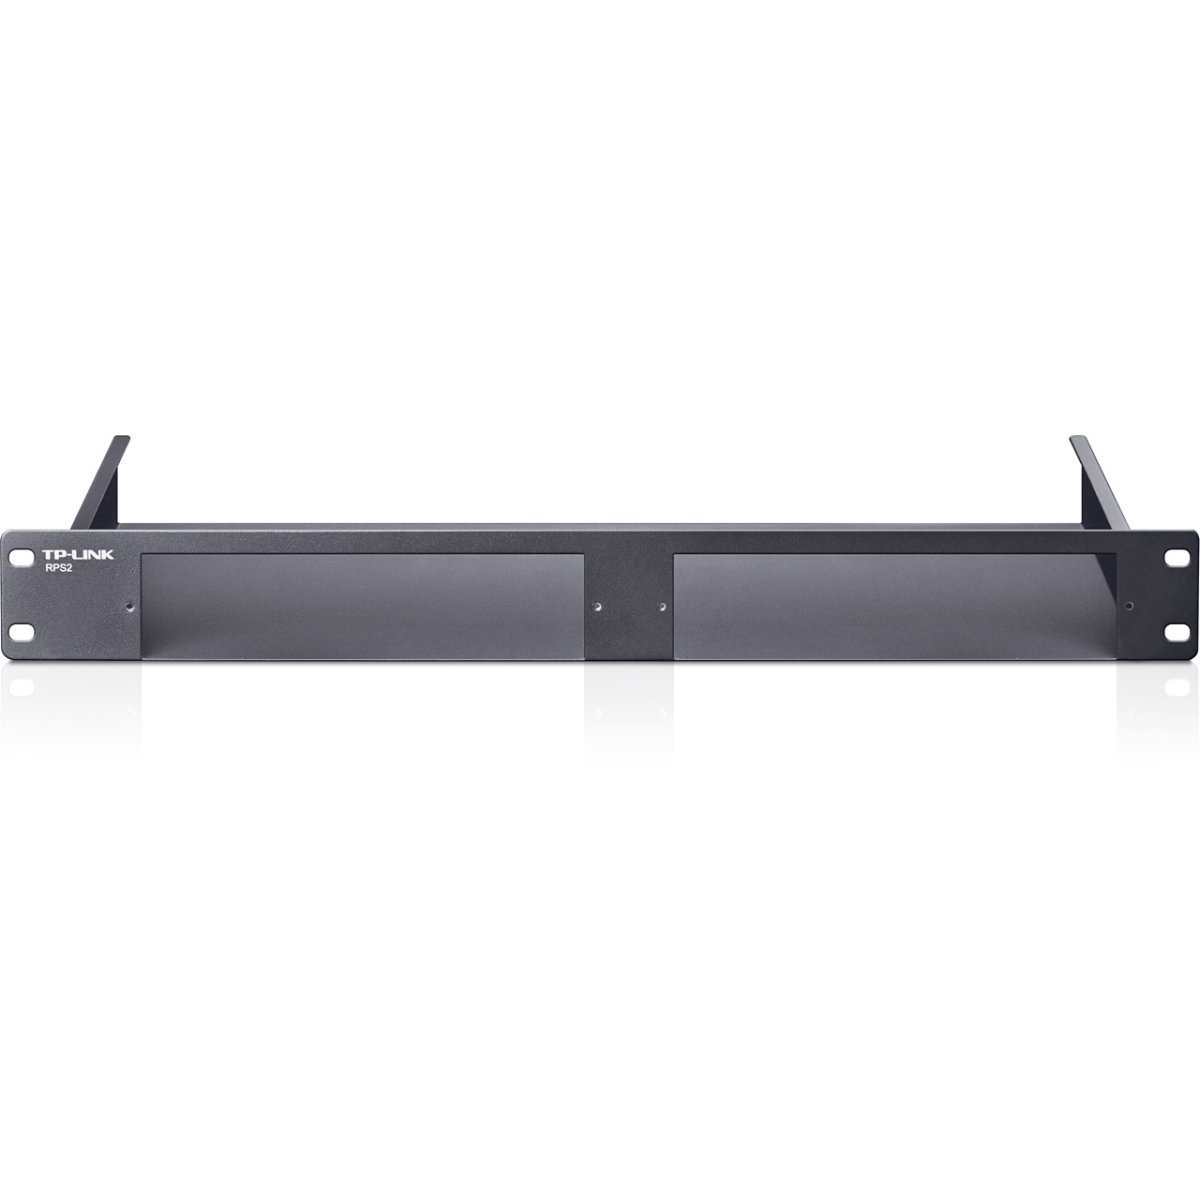 TP-LINK RPS2 2-Slot Rack Mount Chassis for Holding Two RPS150 Redundant Power Supplies